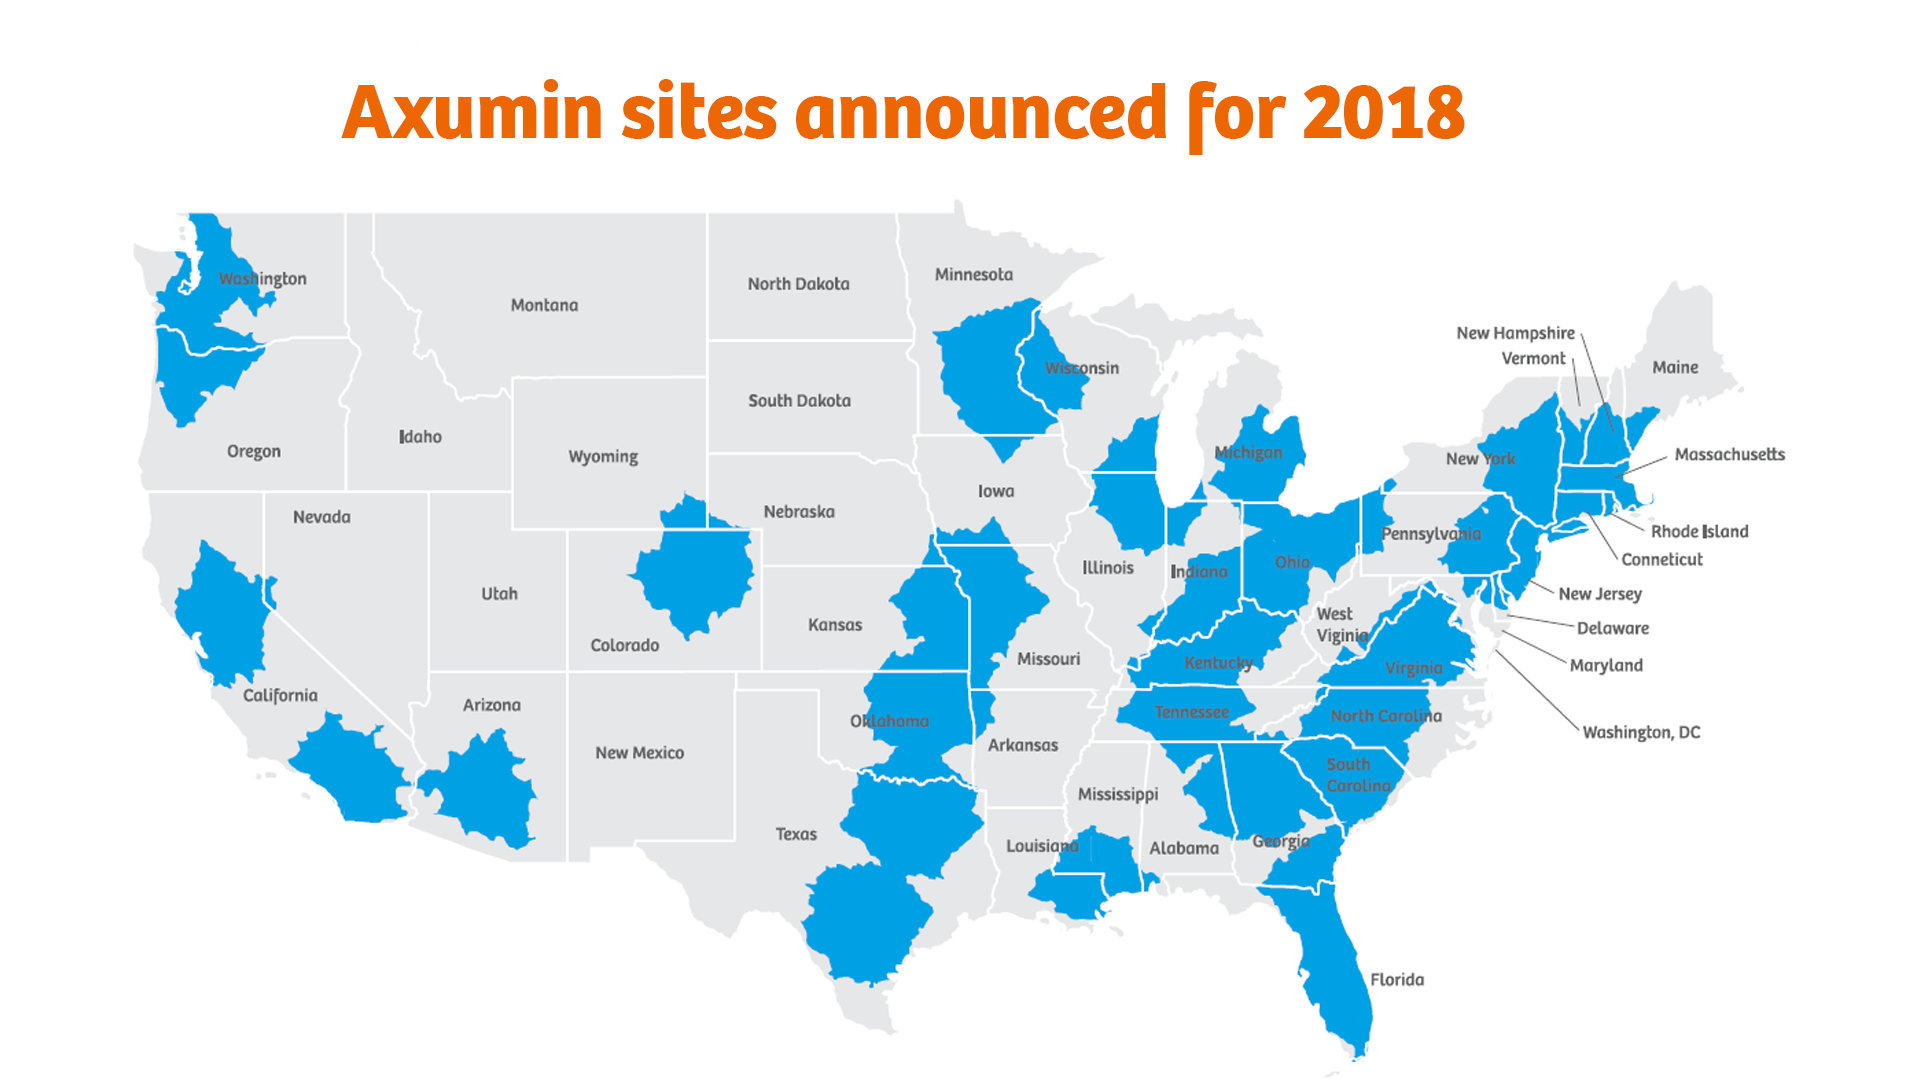 Axumin sites announced for 2018 in the US.